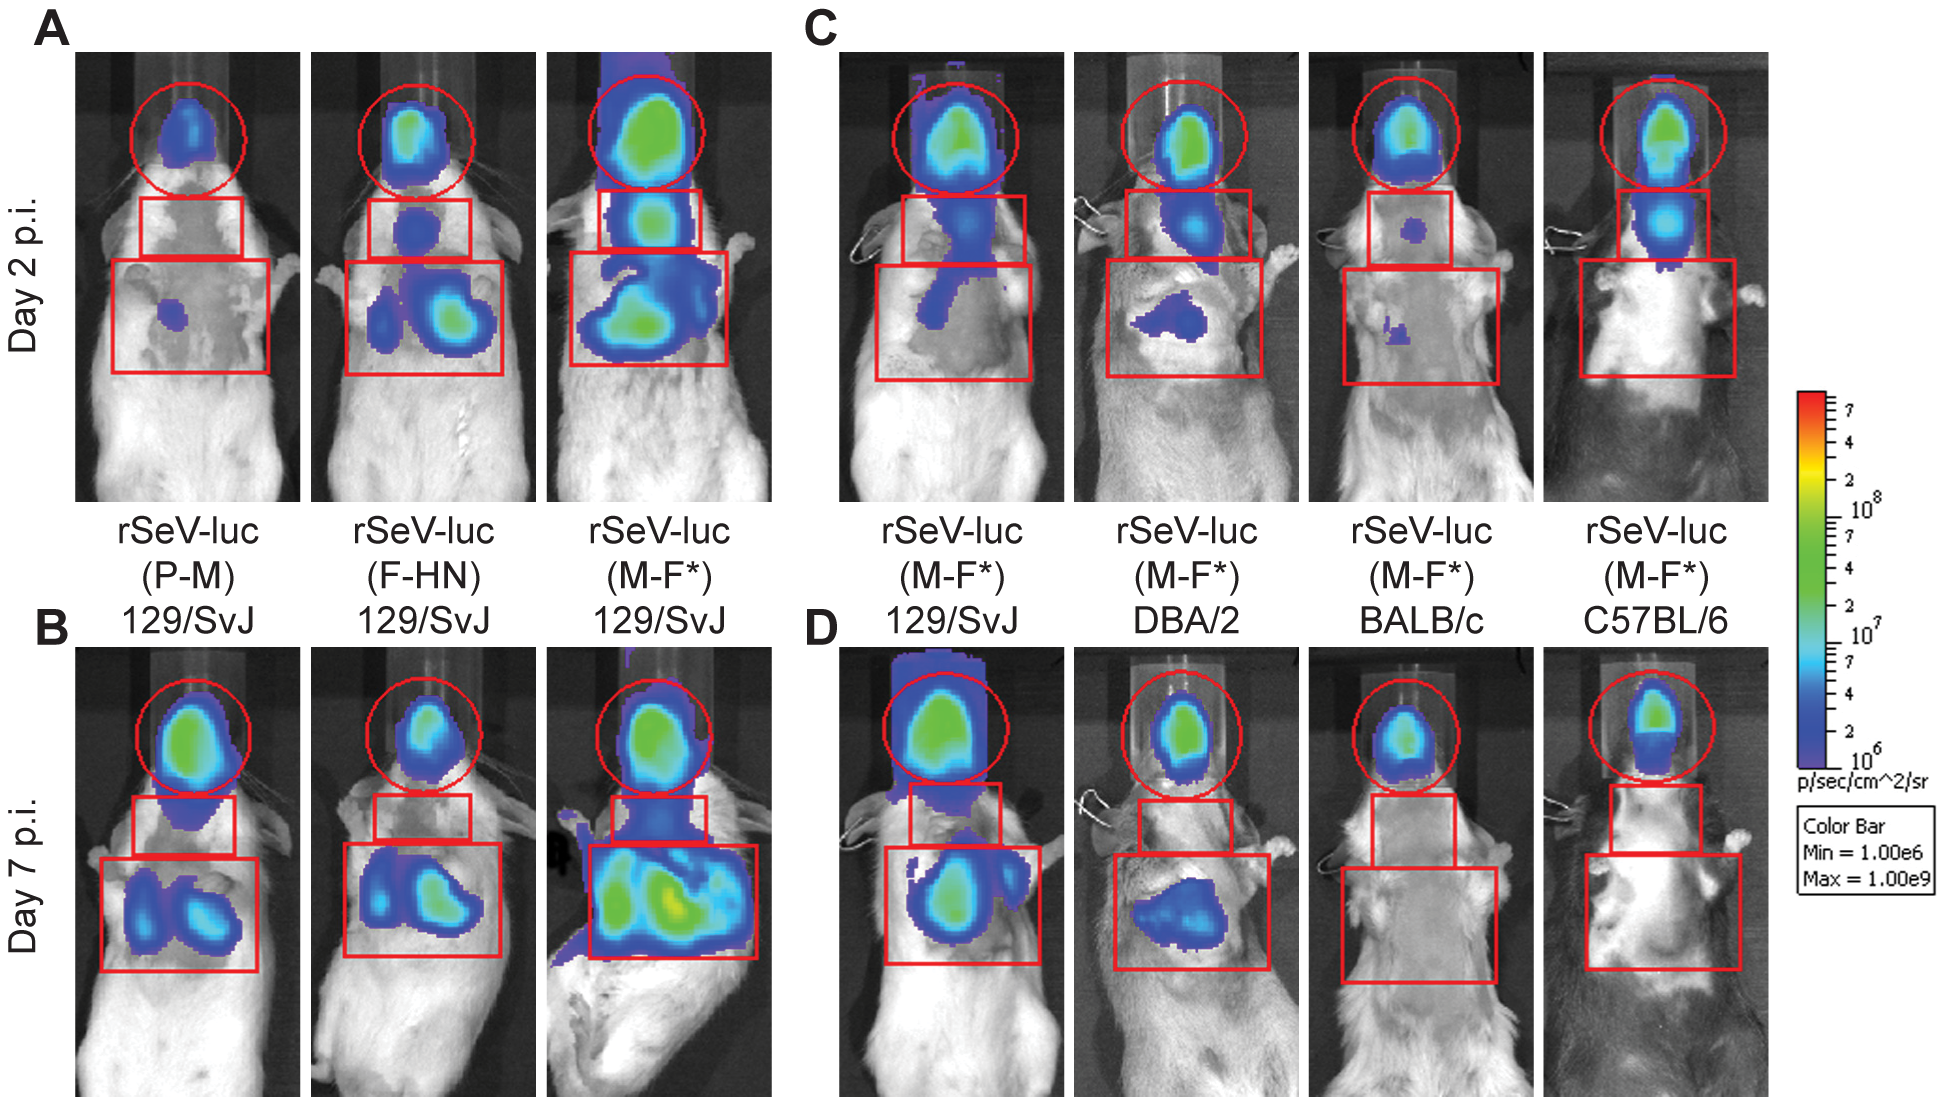 Non-invasive bioluminescence imaging of Sendai virus infection in the respiratory tracts of living mice.